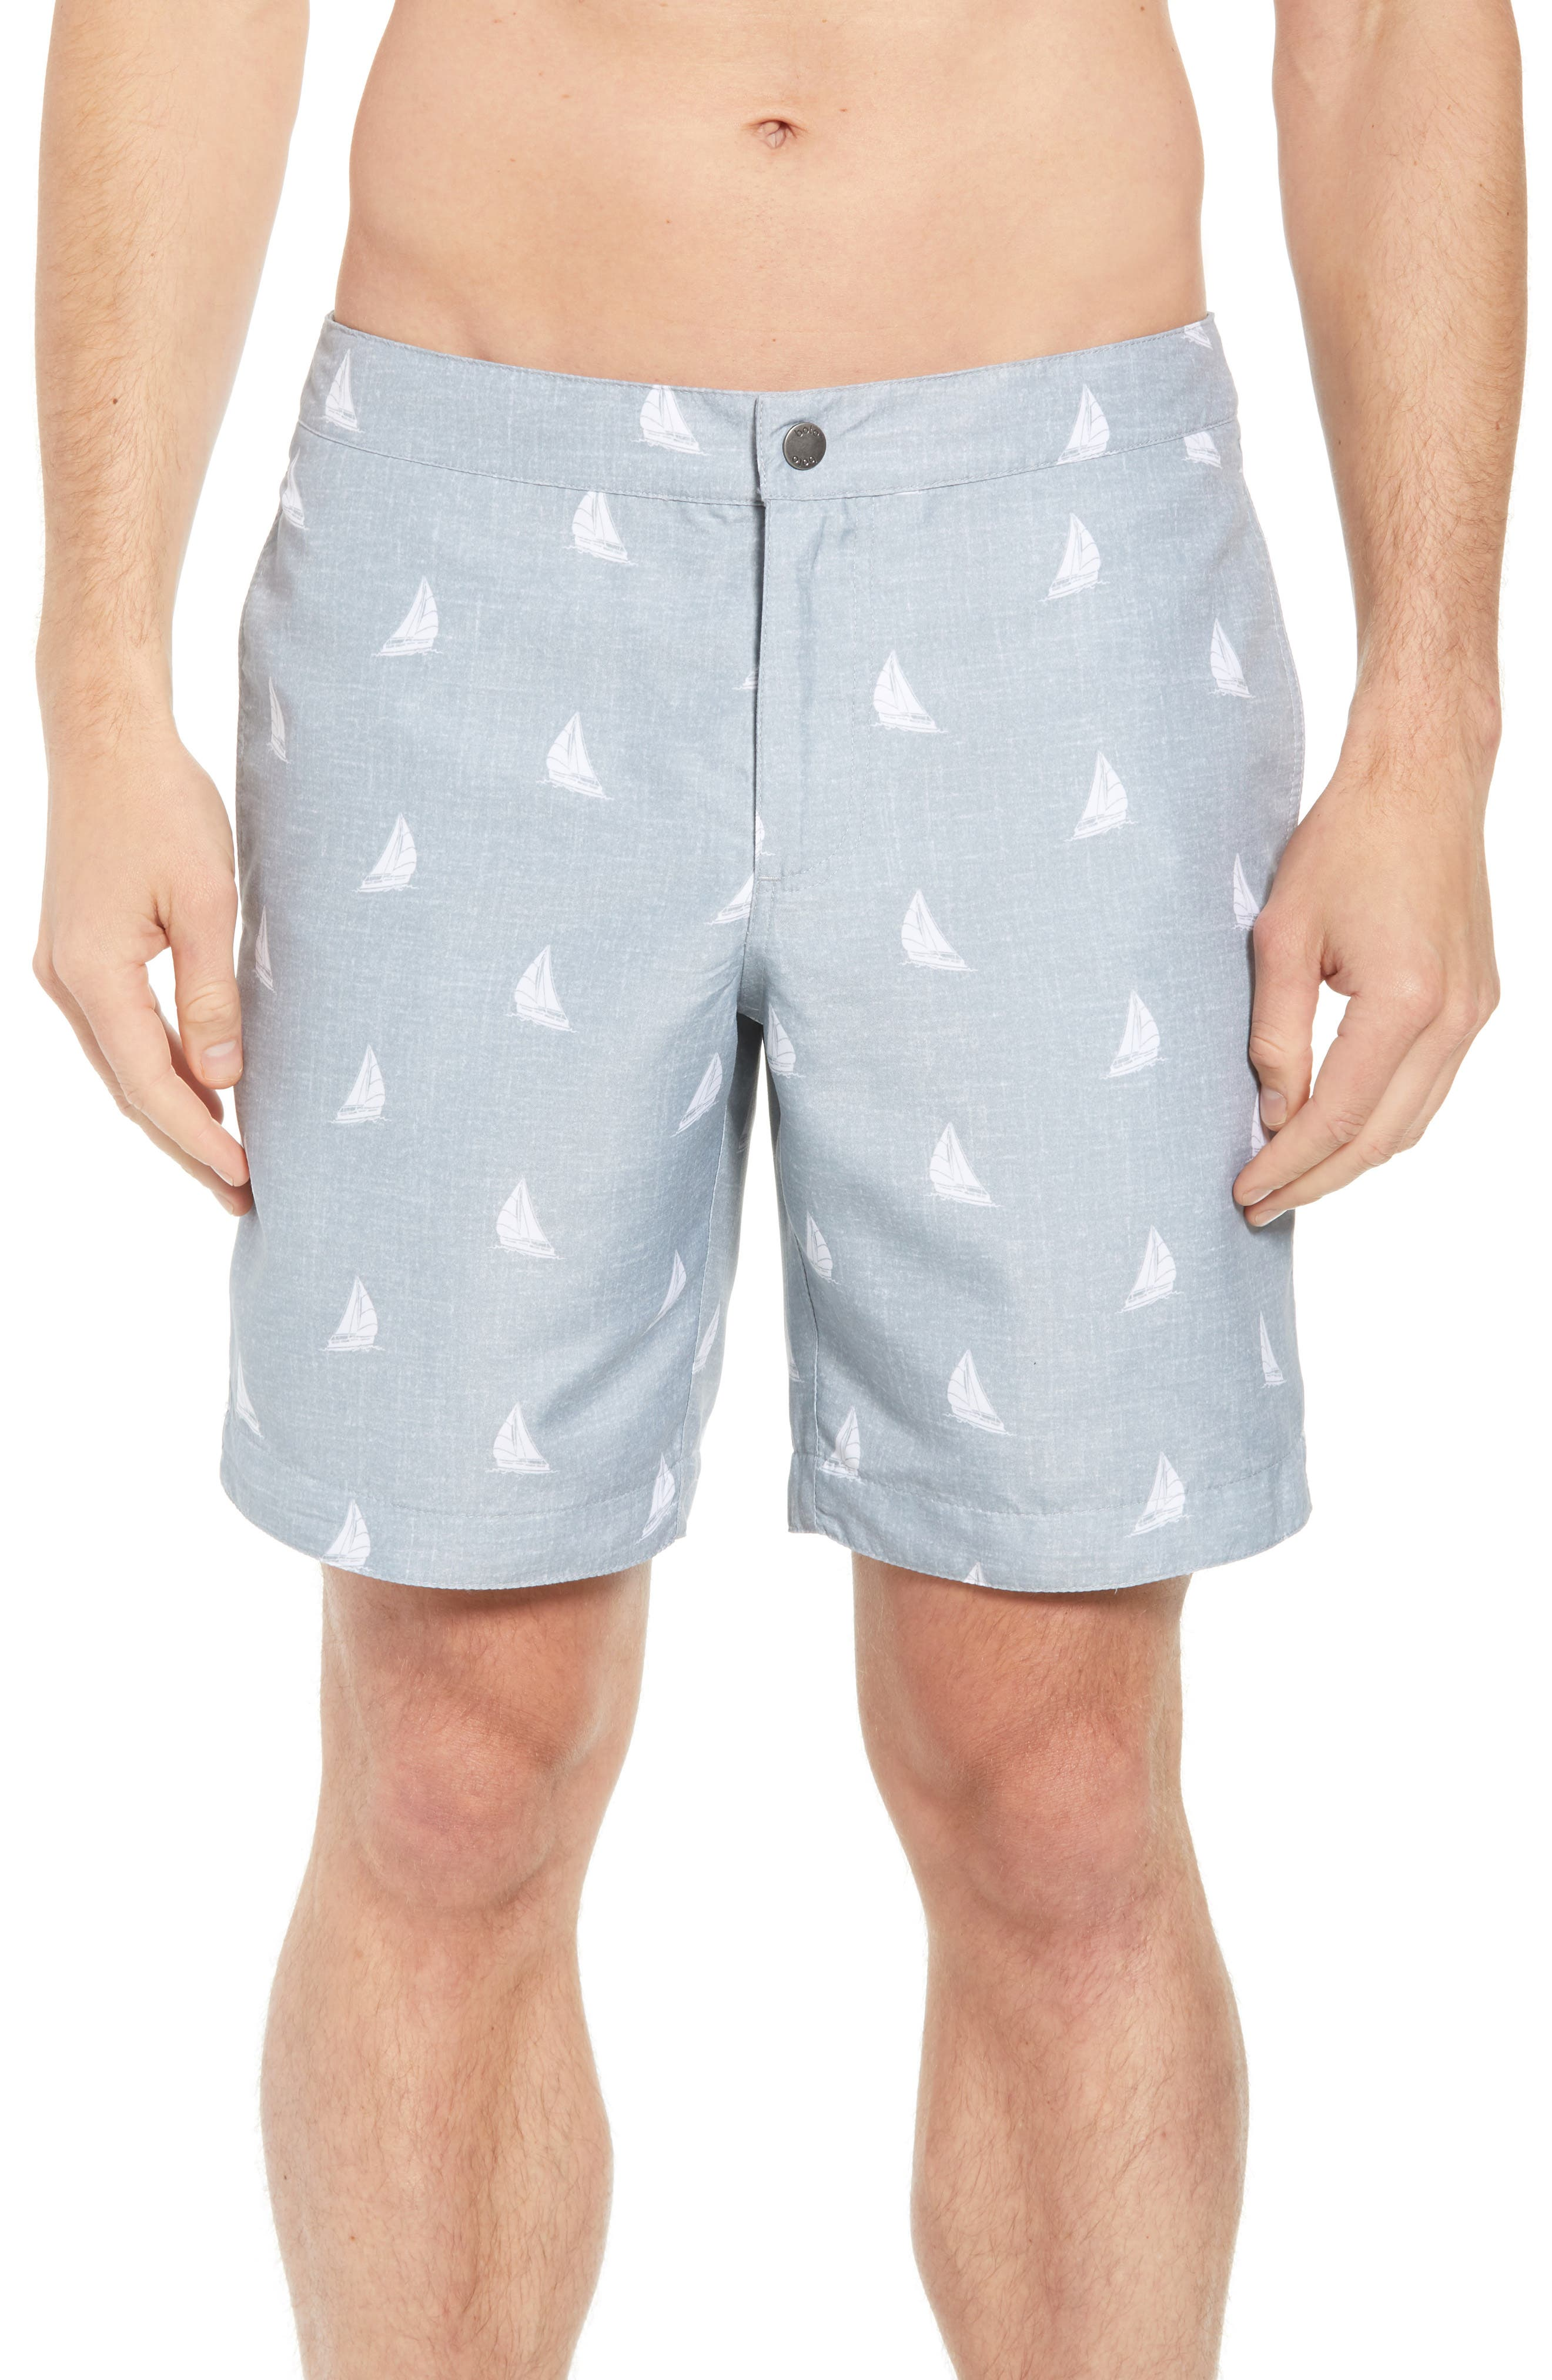 Aruba Slim Fit Swim Trunks,                         Main,                         color, HEATHERED GREY SAILBOATS